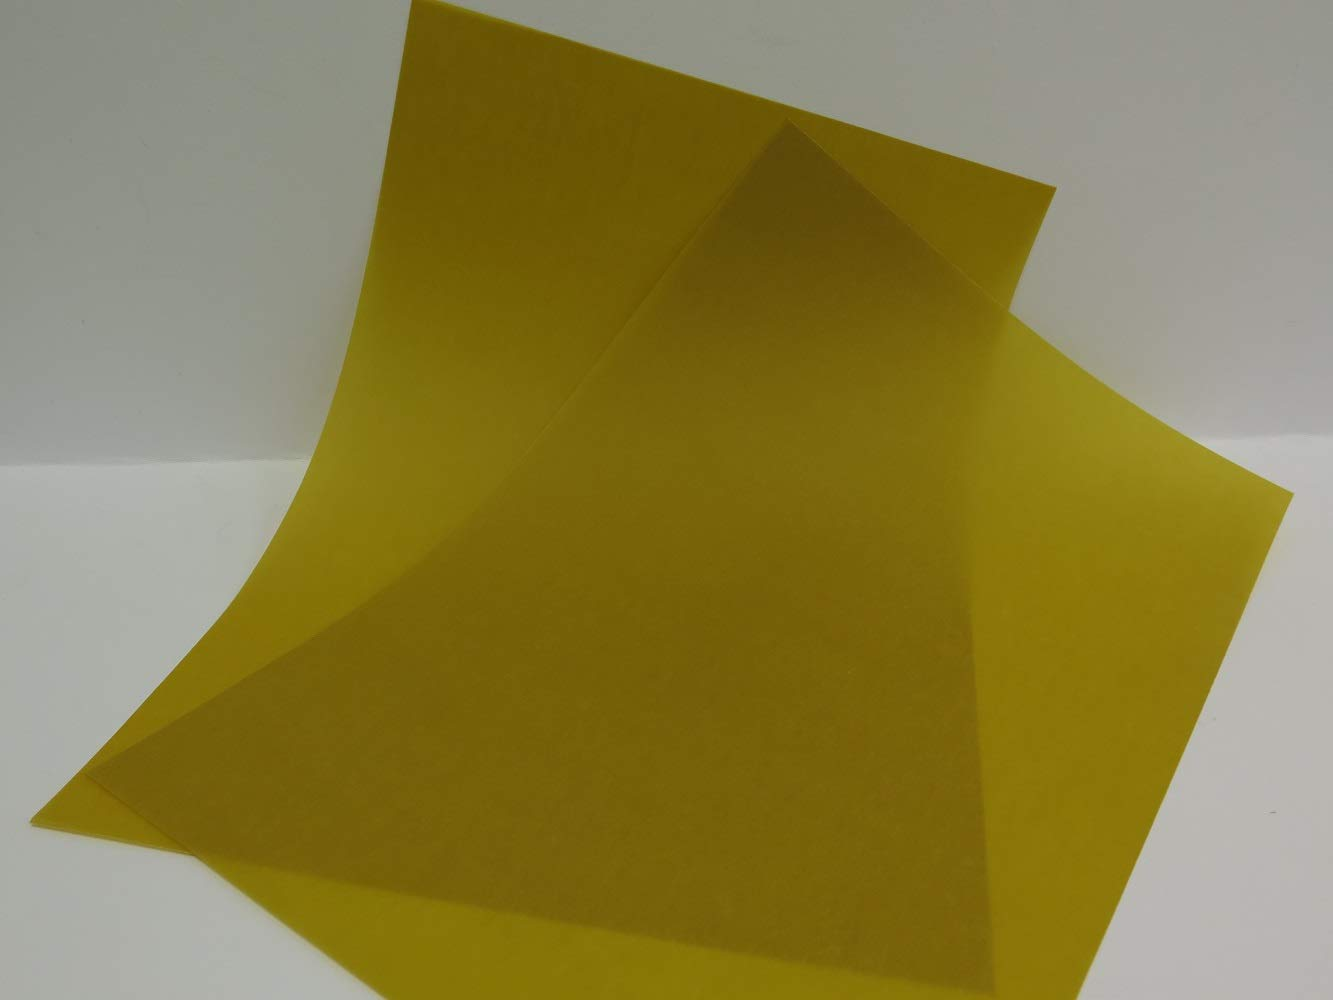 25 x Vellum Coloured Translucent Tracing Paper A4 160gsm 3 Colours Cardmaking (Amber AM799) Jackdaw Express